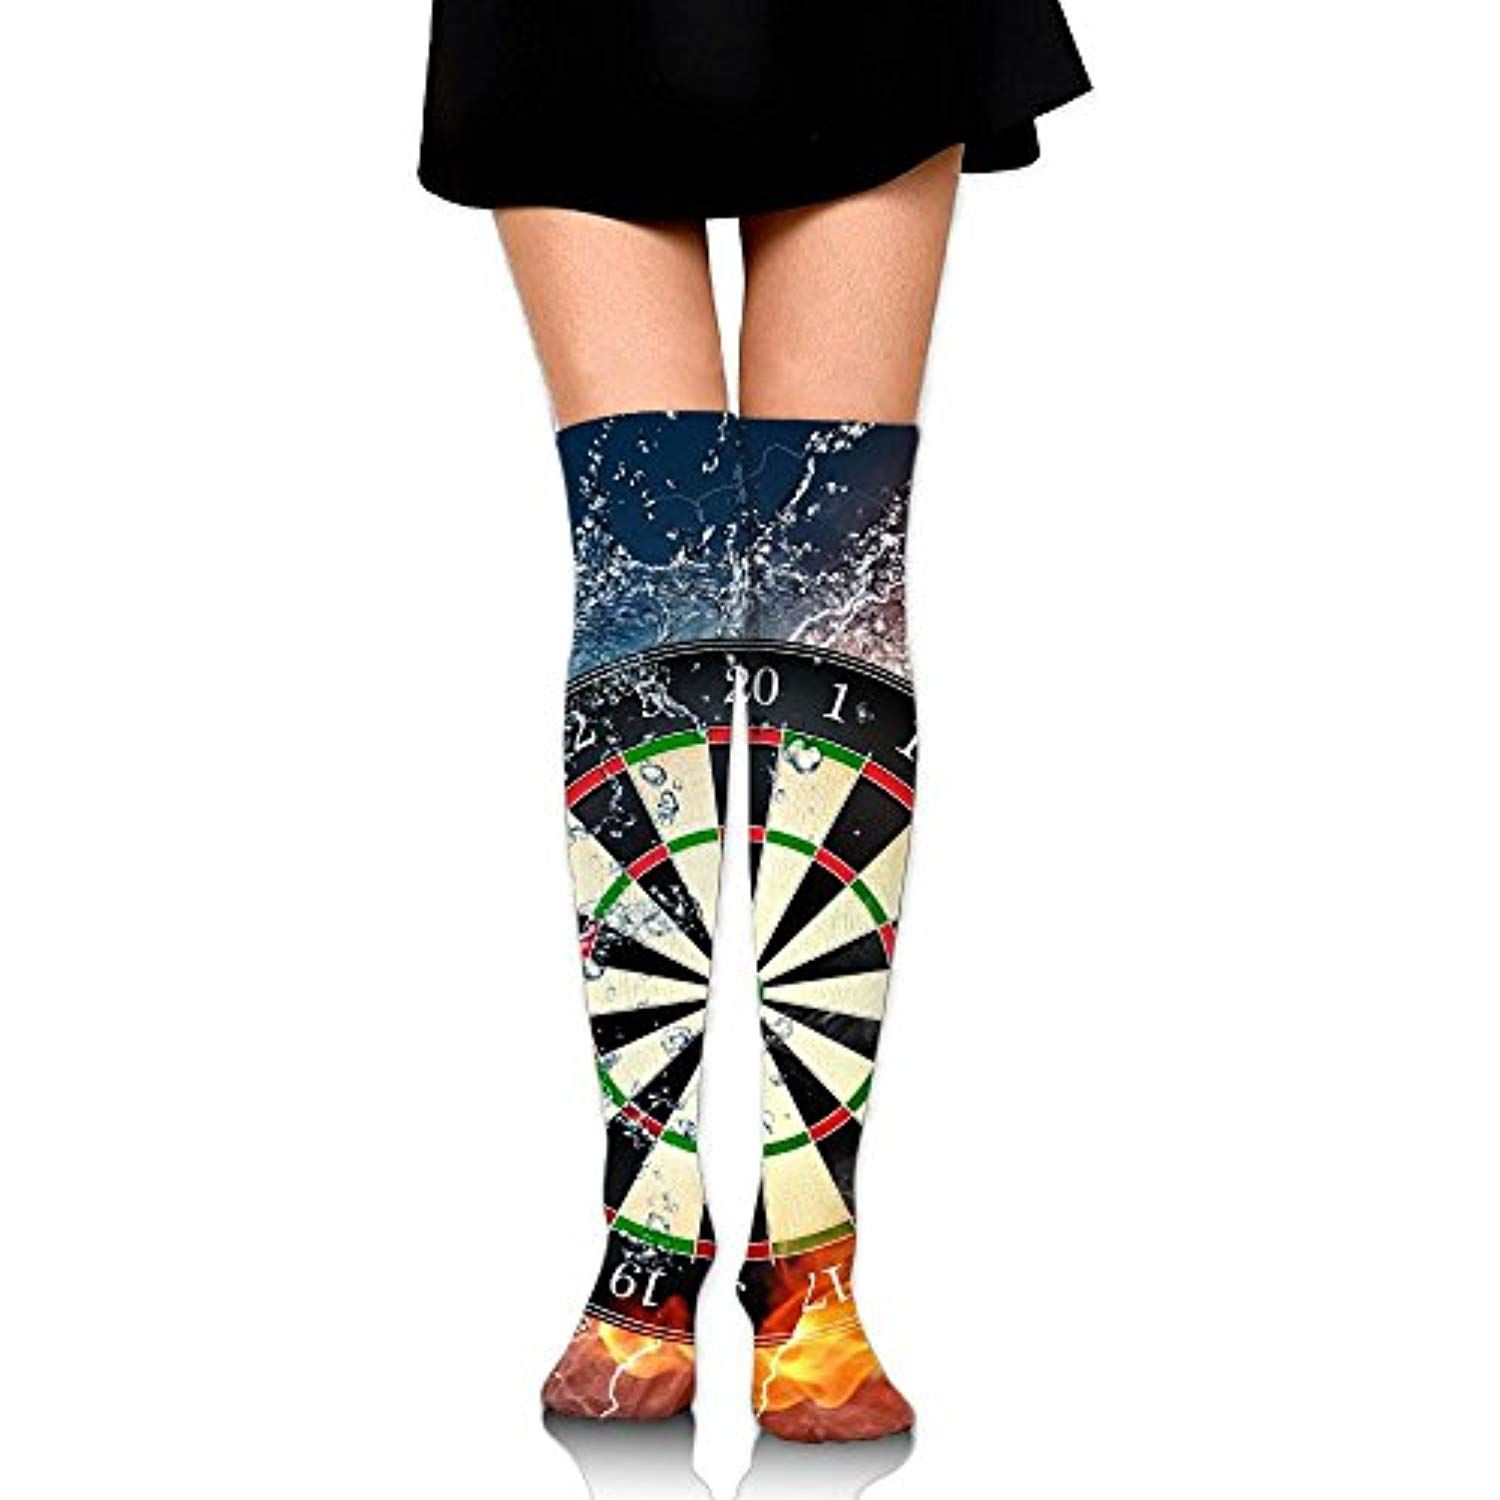 Pengmin Black Red And Green Darts Cotton Compression Socks For Women Graduated Stockings For Nurses Maternity Trav Cotton Compression Socks Maternity Women